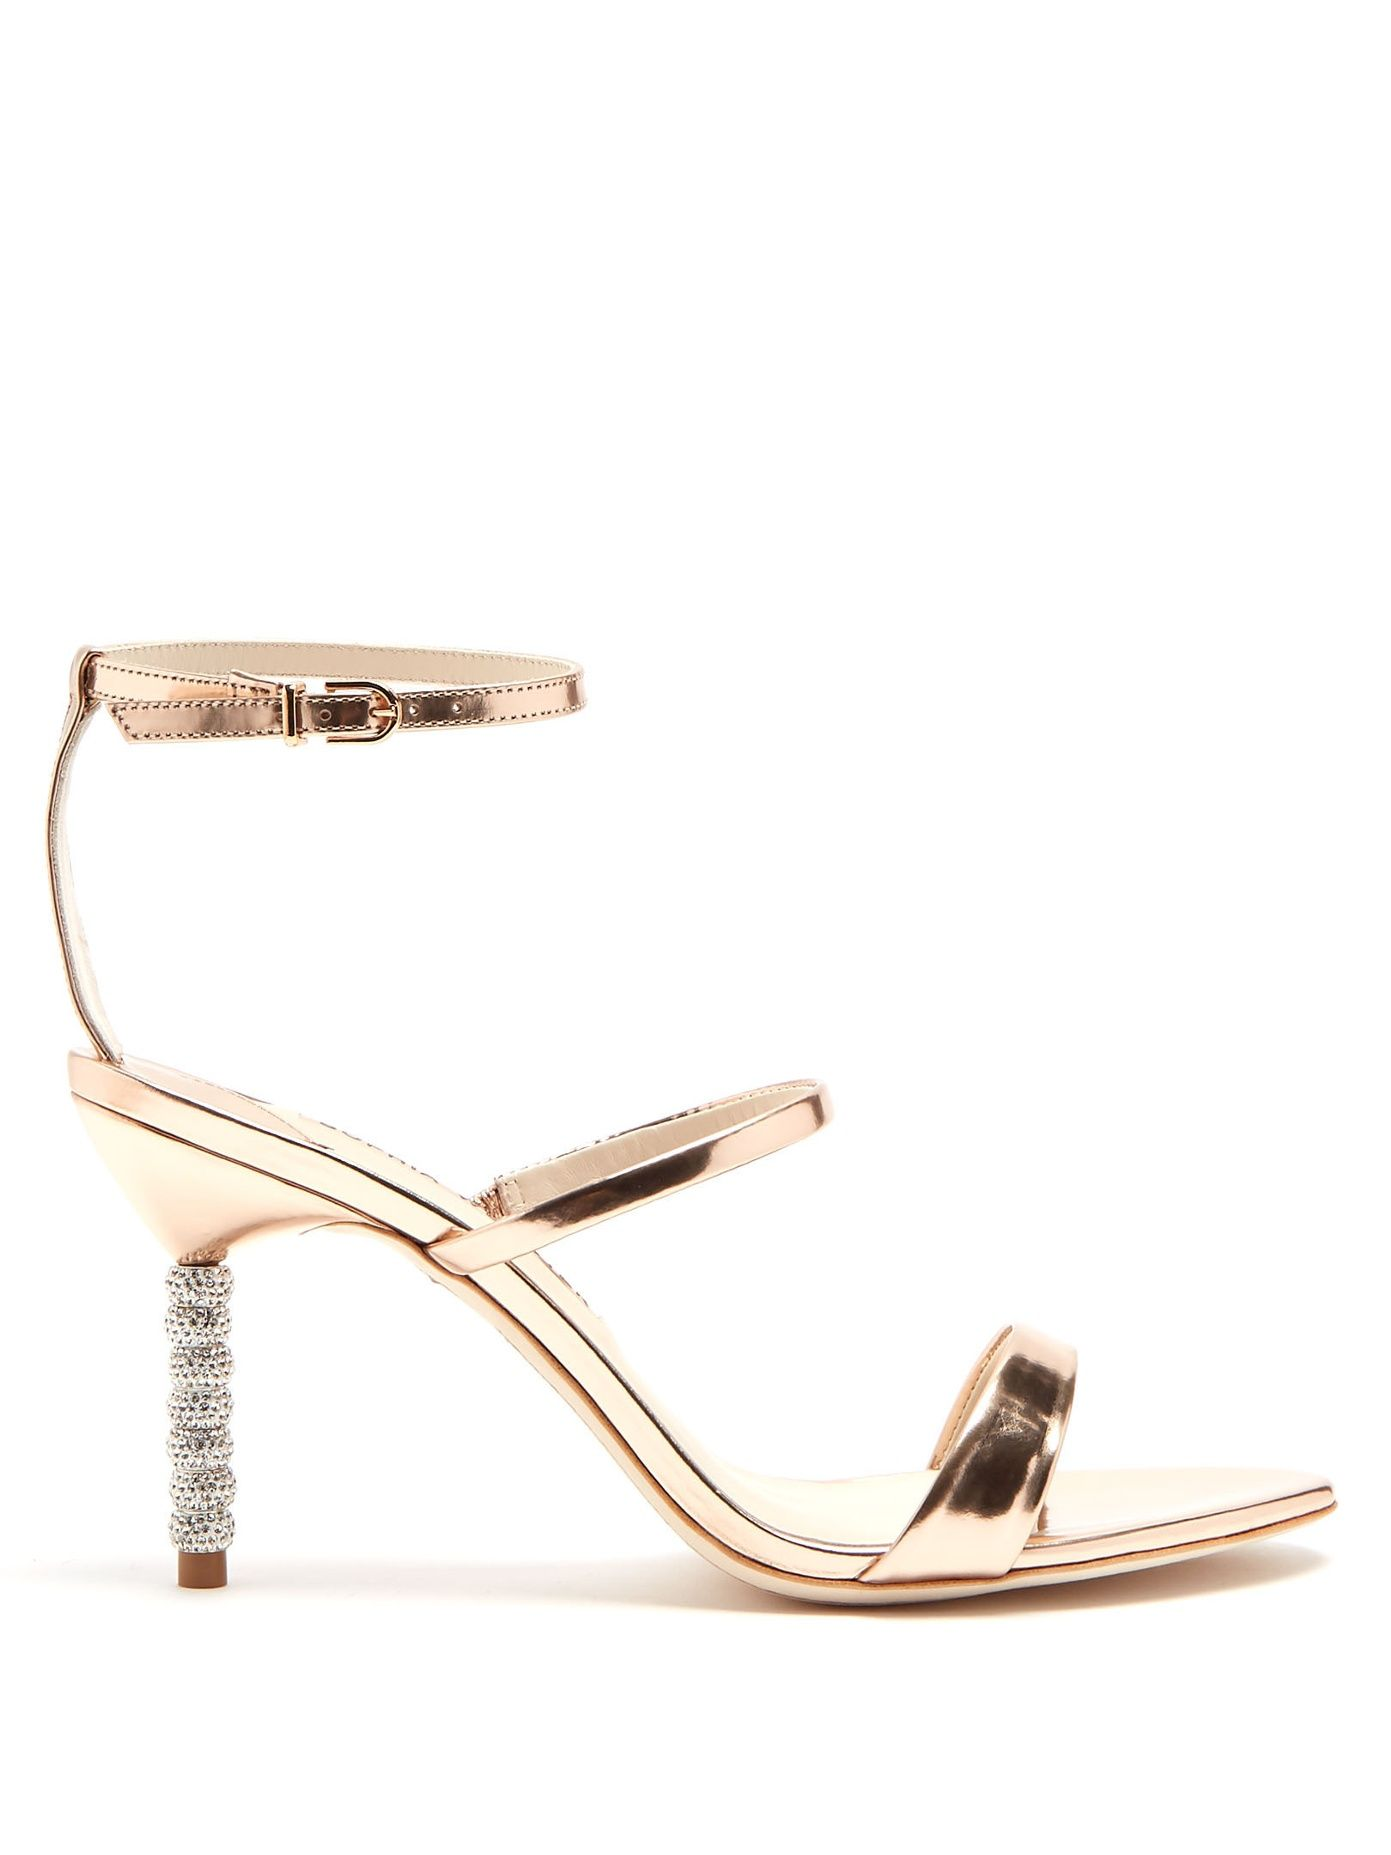 cc7394b8a00 Click here to buy Sophia Webster Rosalind crystal embellished-heel leather  sandals at MATCHESFASHION.COM